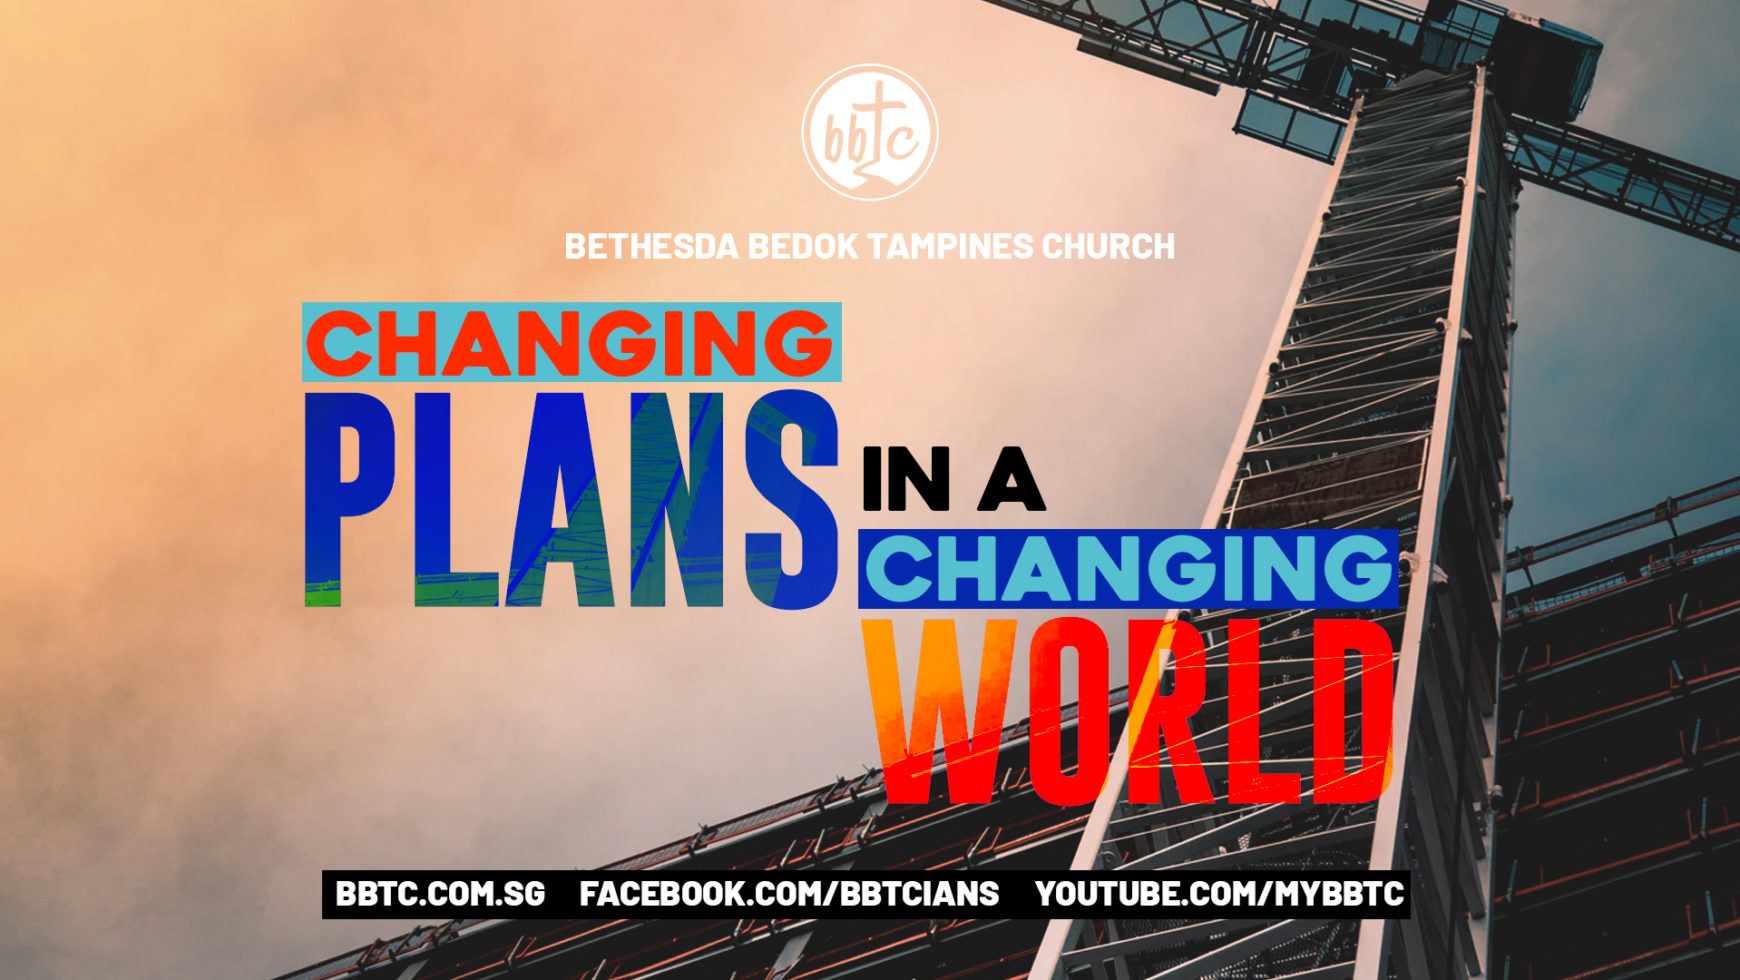 CHANGING PLANS IN A CHANGING WORLD